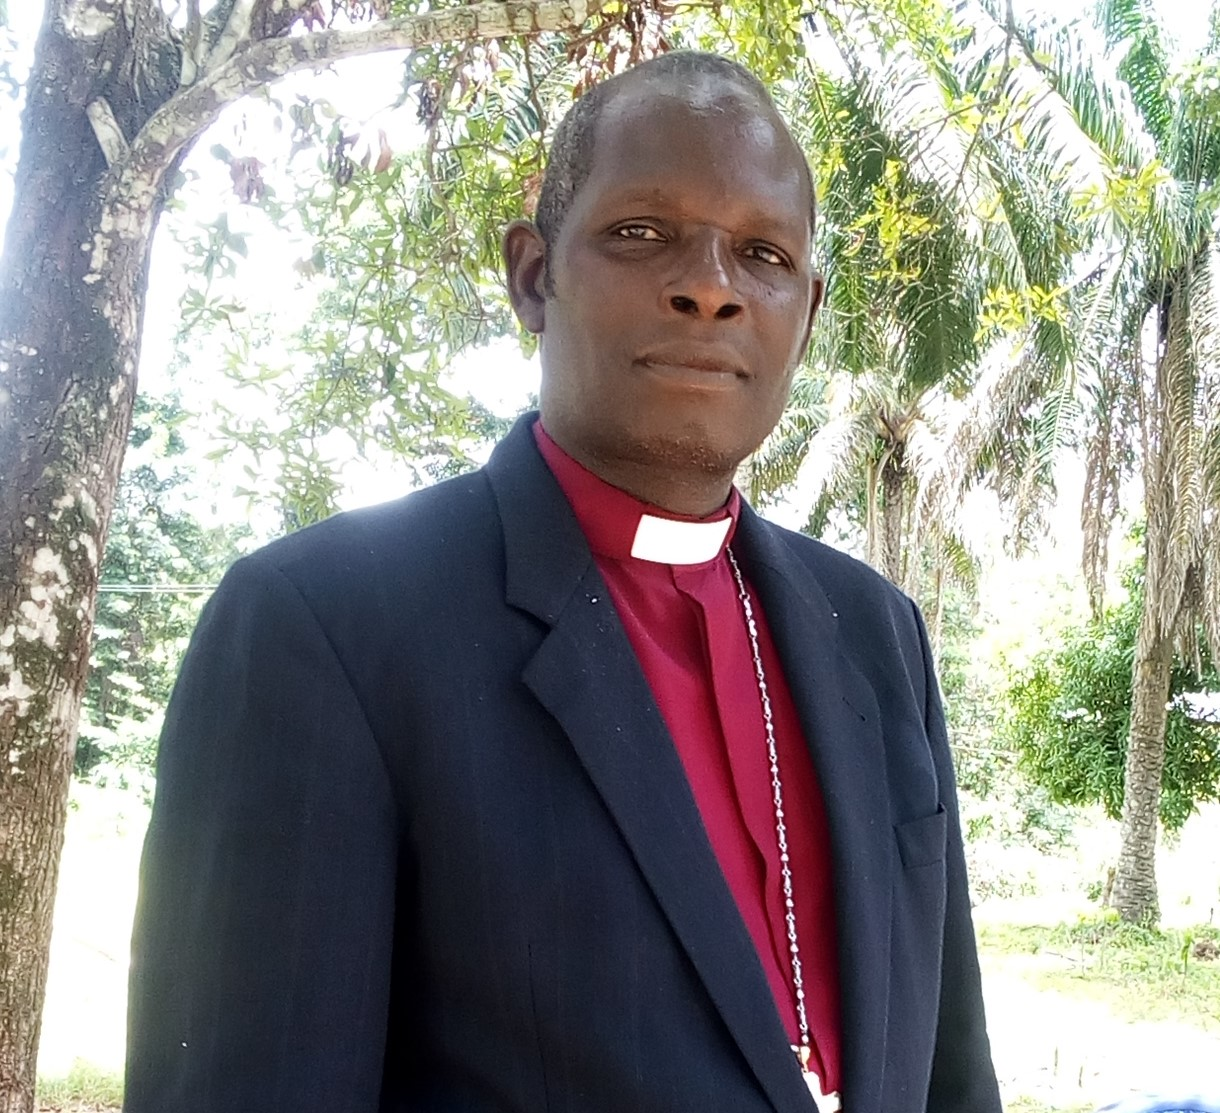 Bishop Adeoye warns Christians, steal public funds and burn in hell